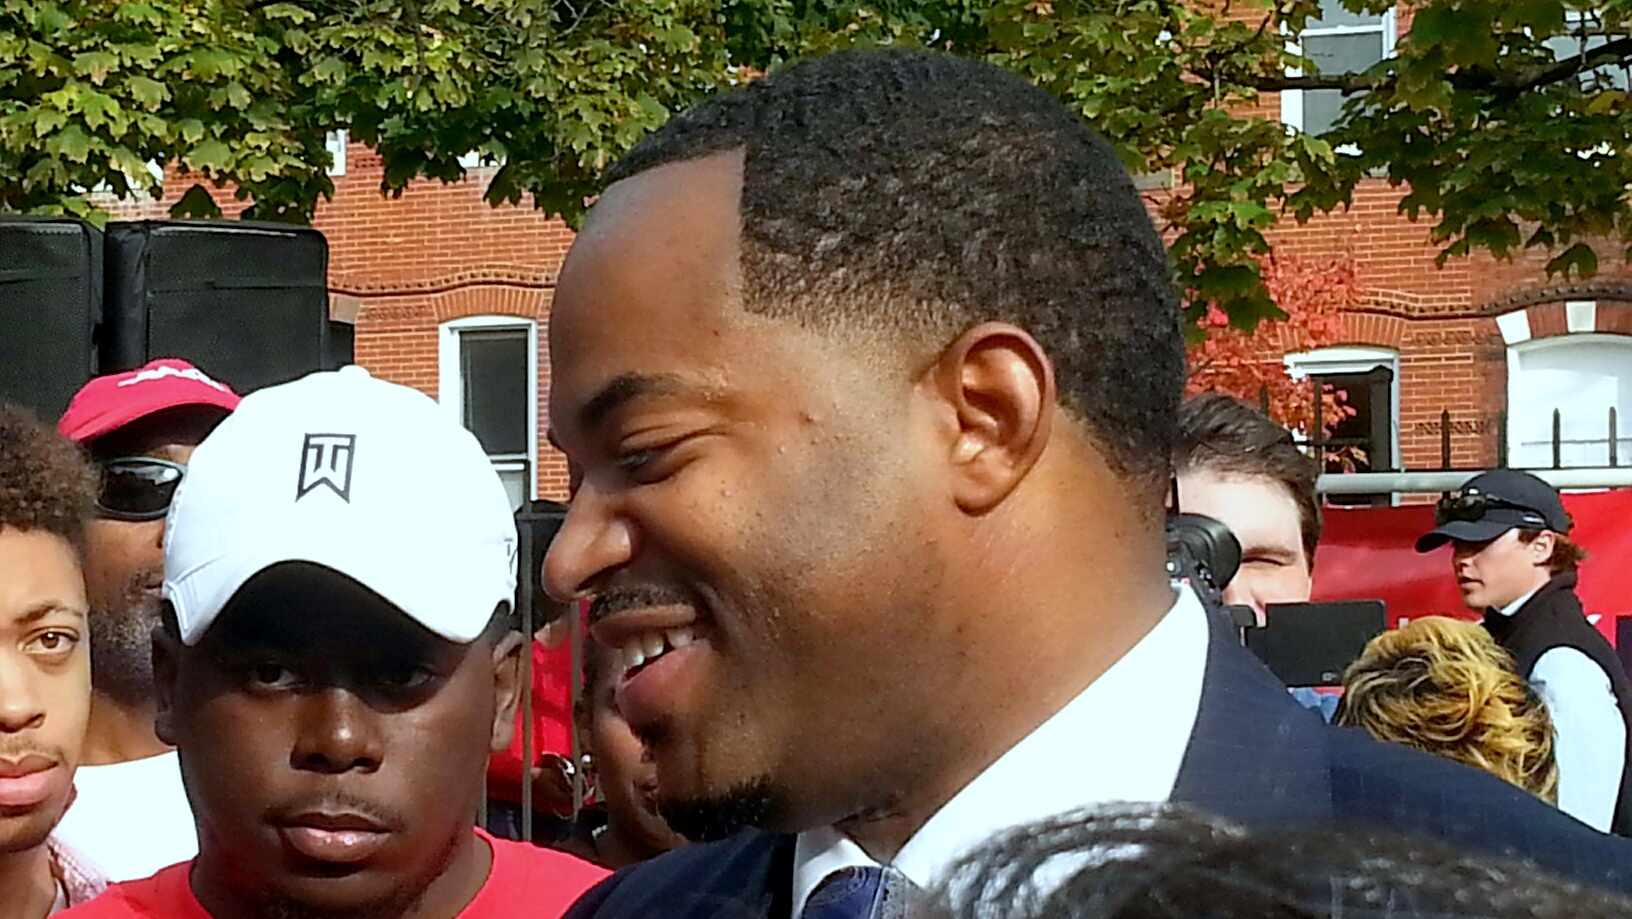 Coucnilman Nick Mosby at his mayoral campaign kickoff event in October. (Photo by Ed Gunts)